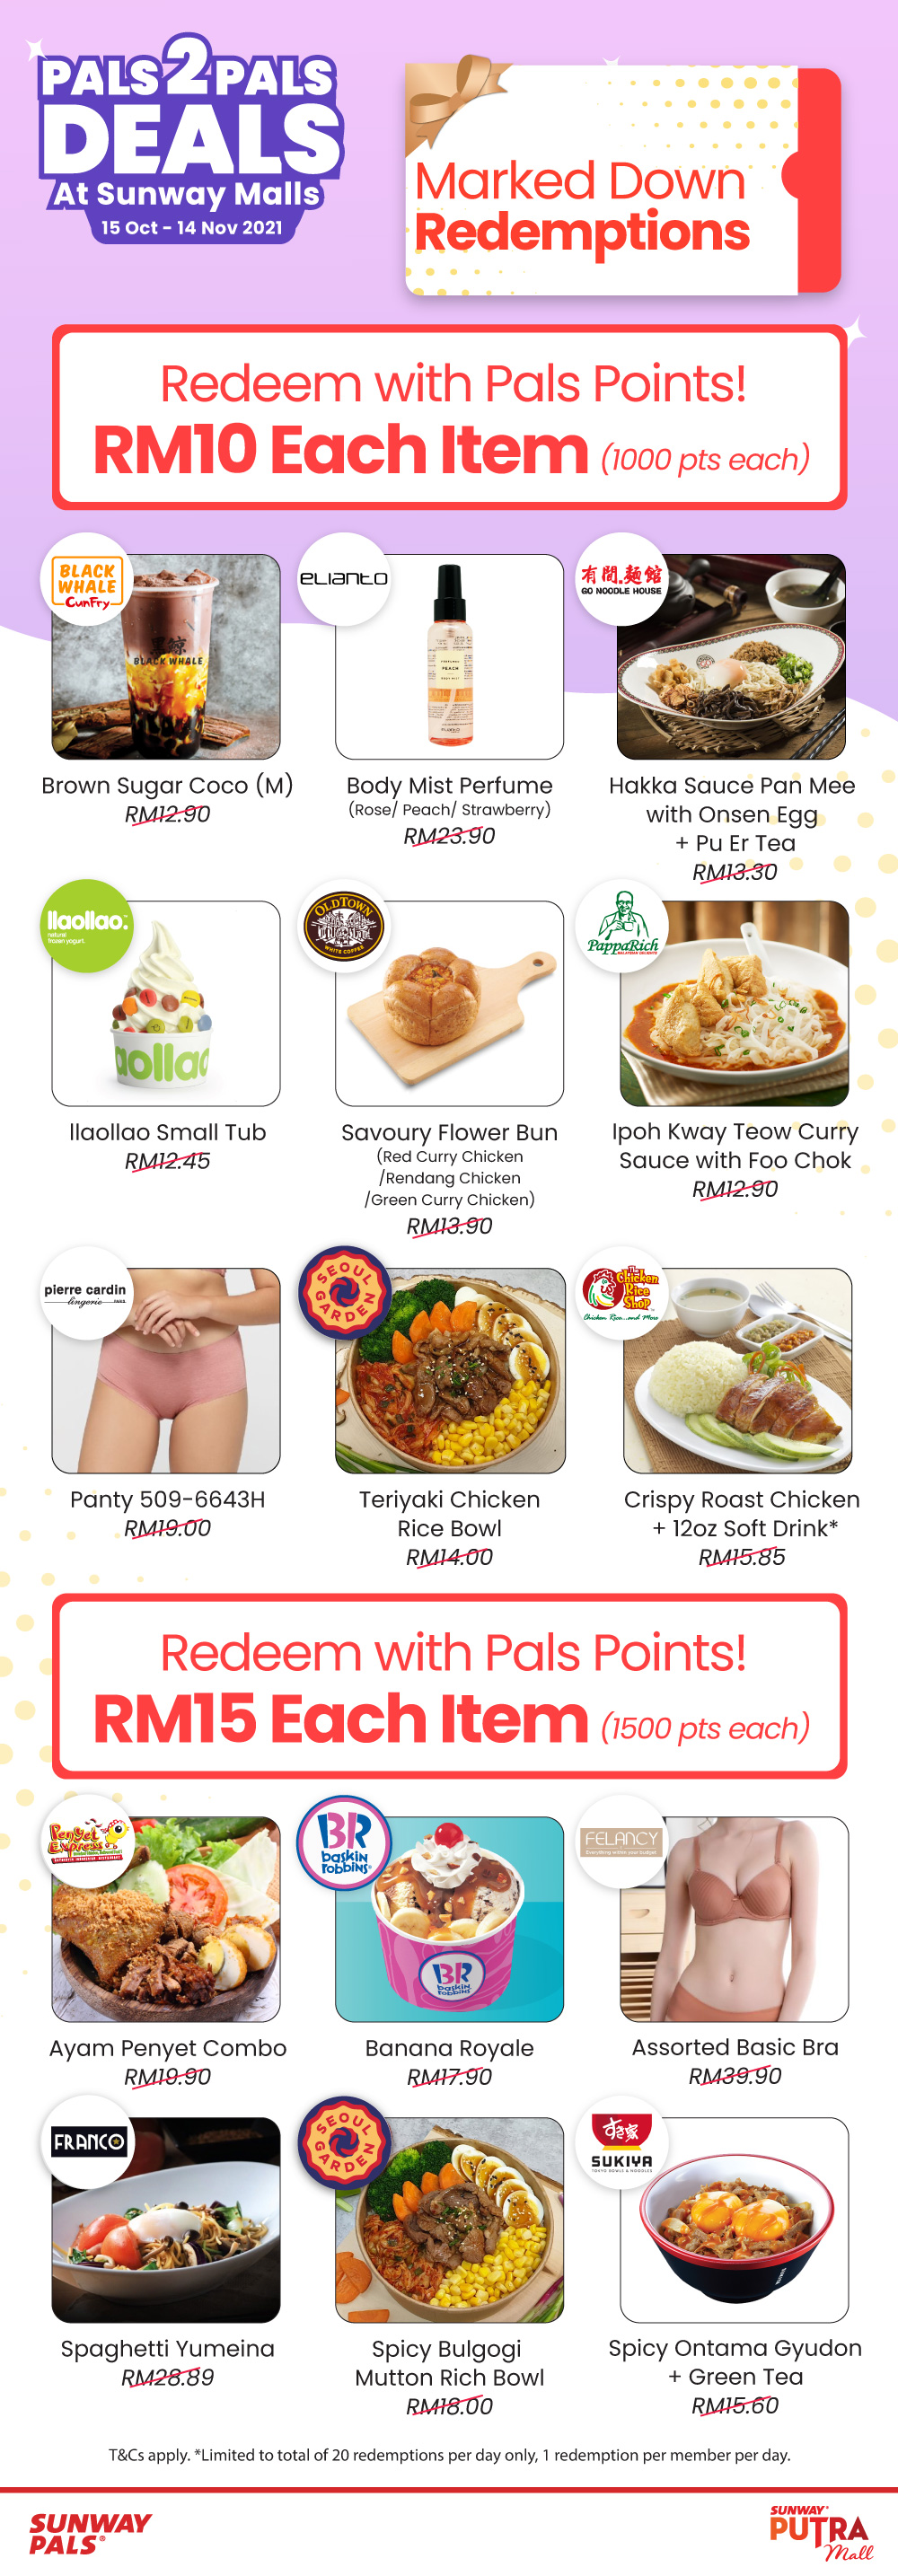 P2PD - Sunway Putra Mall RM10 & RM15 Marked Down Redemptions